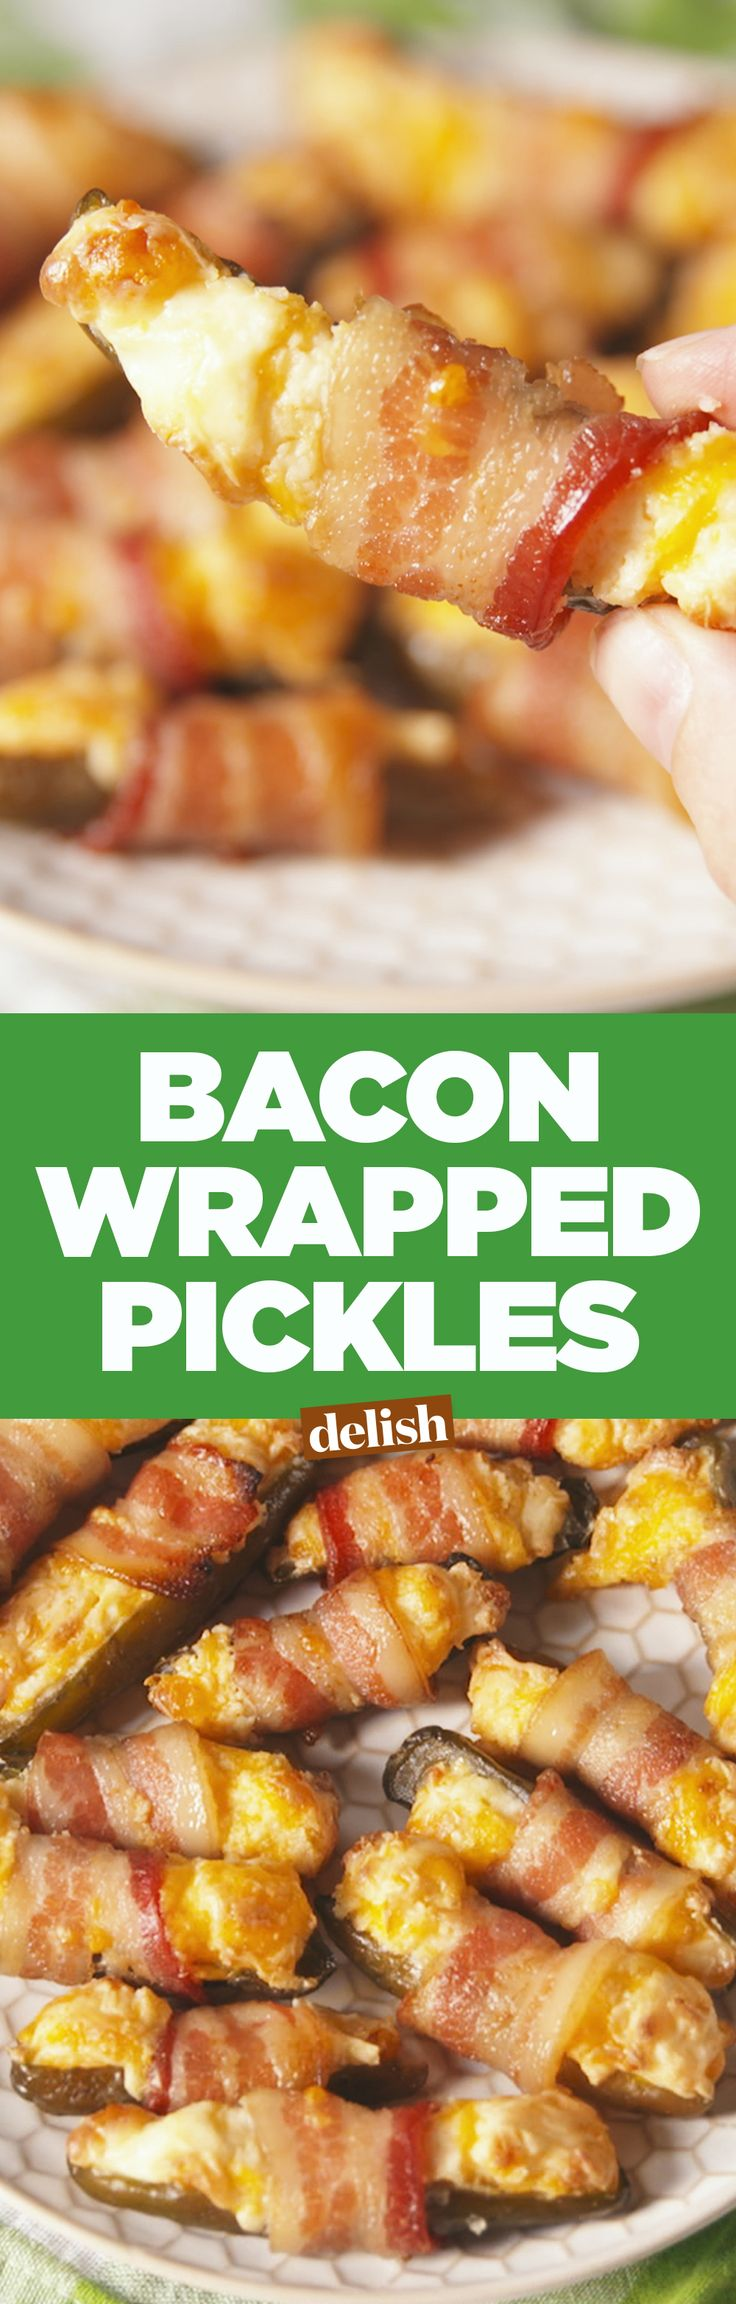 Pickle lovers, you're going to freak over bacon-wrapped pickles. Get the recipe on Delish.com.